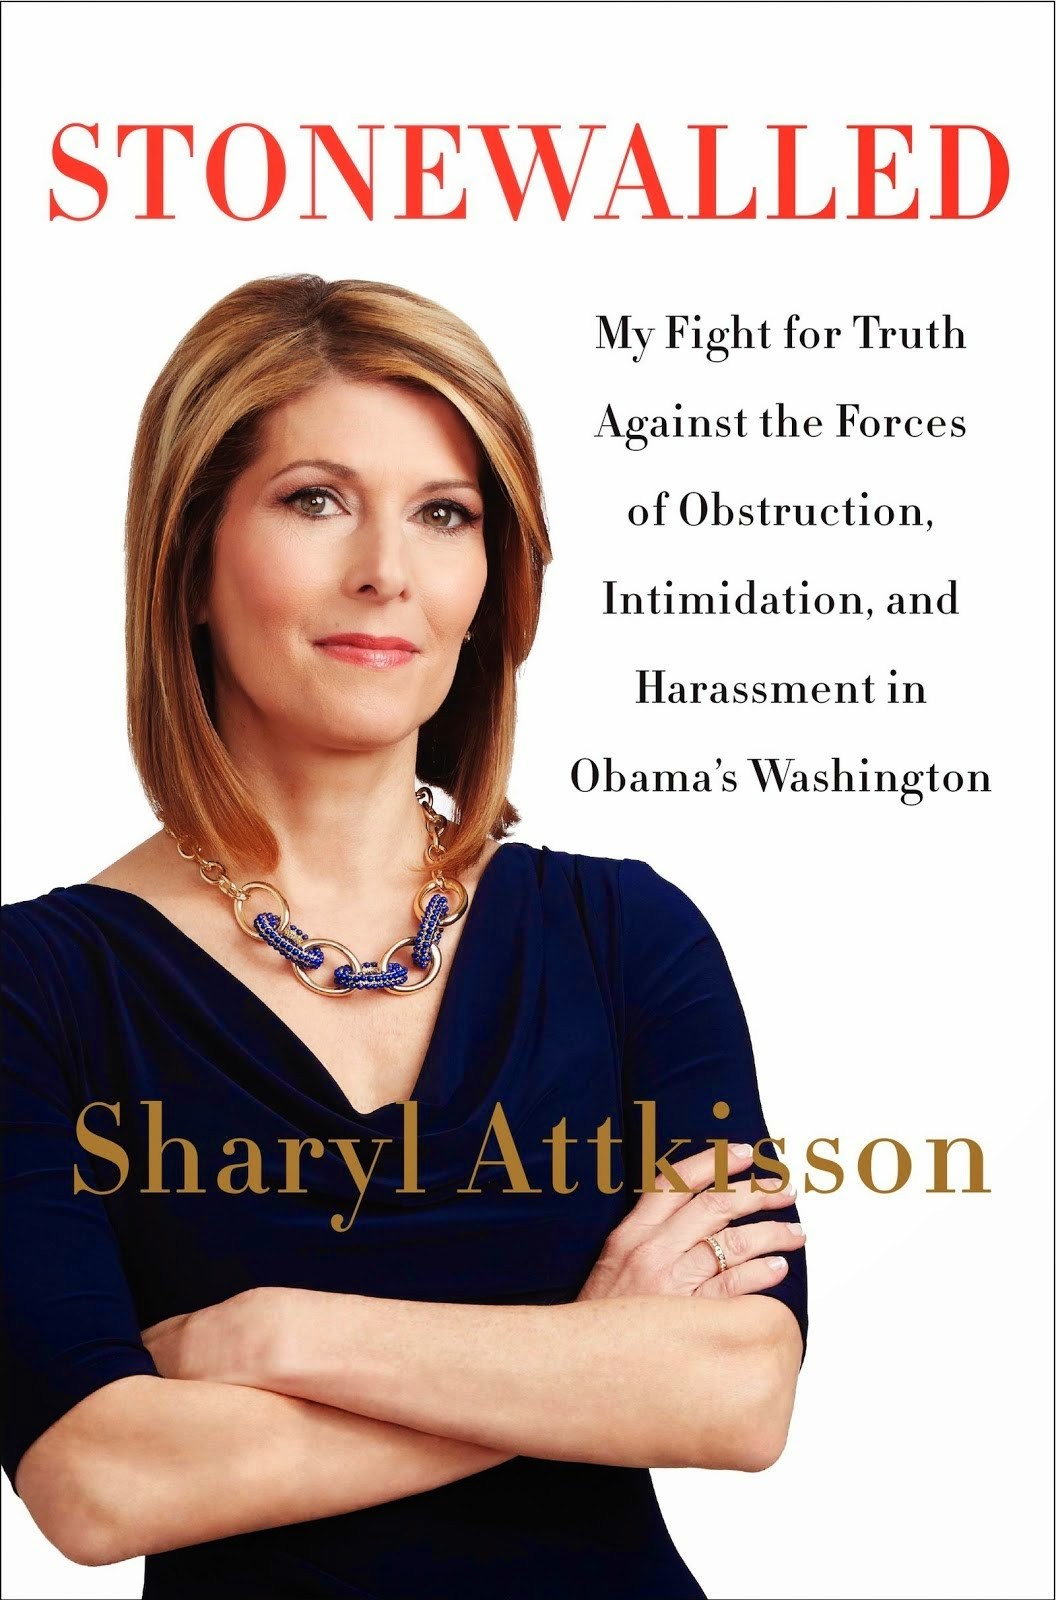 Sharyl Attkisson - Stonewalled